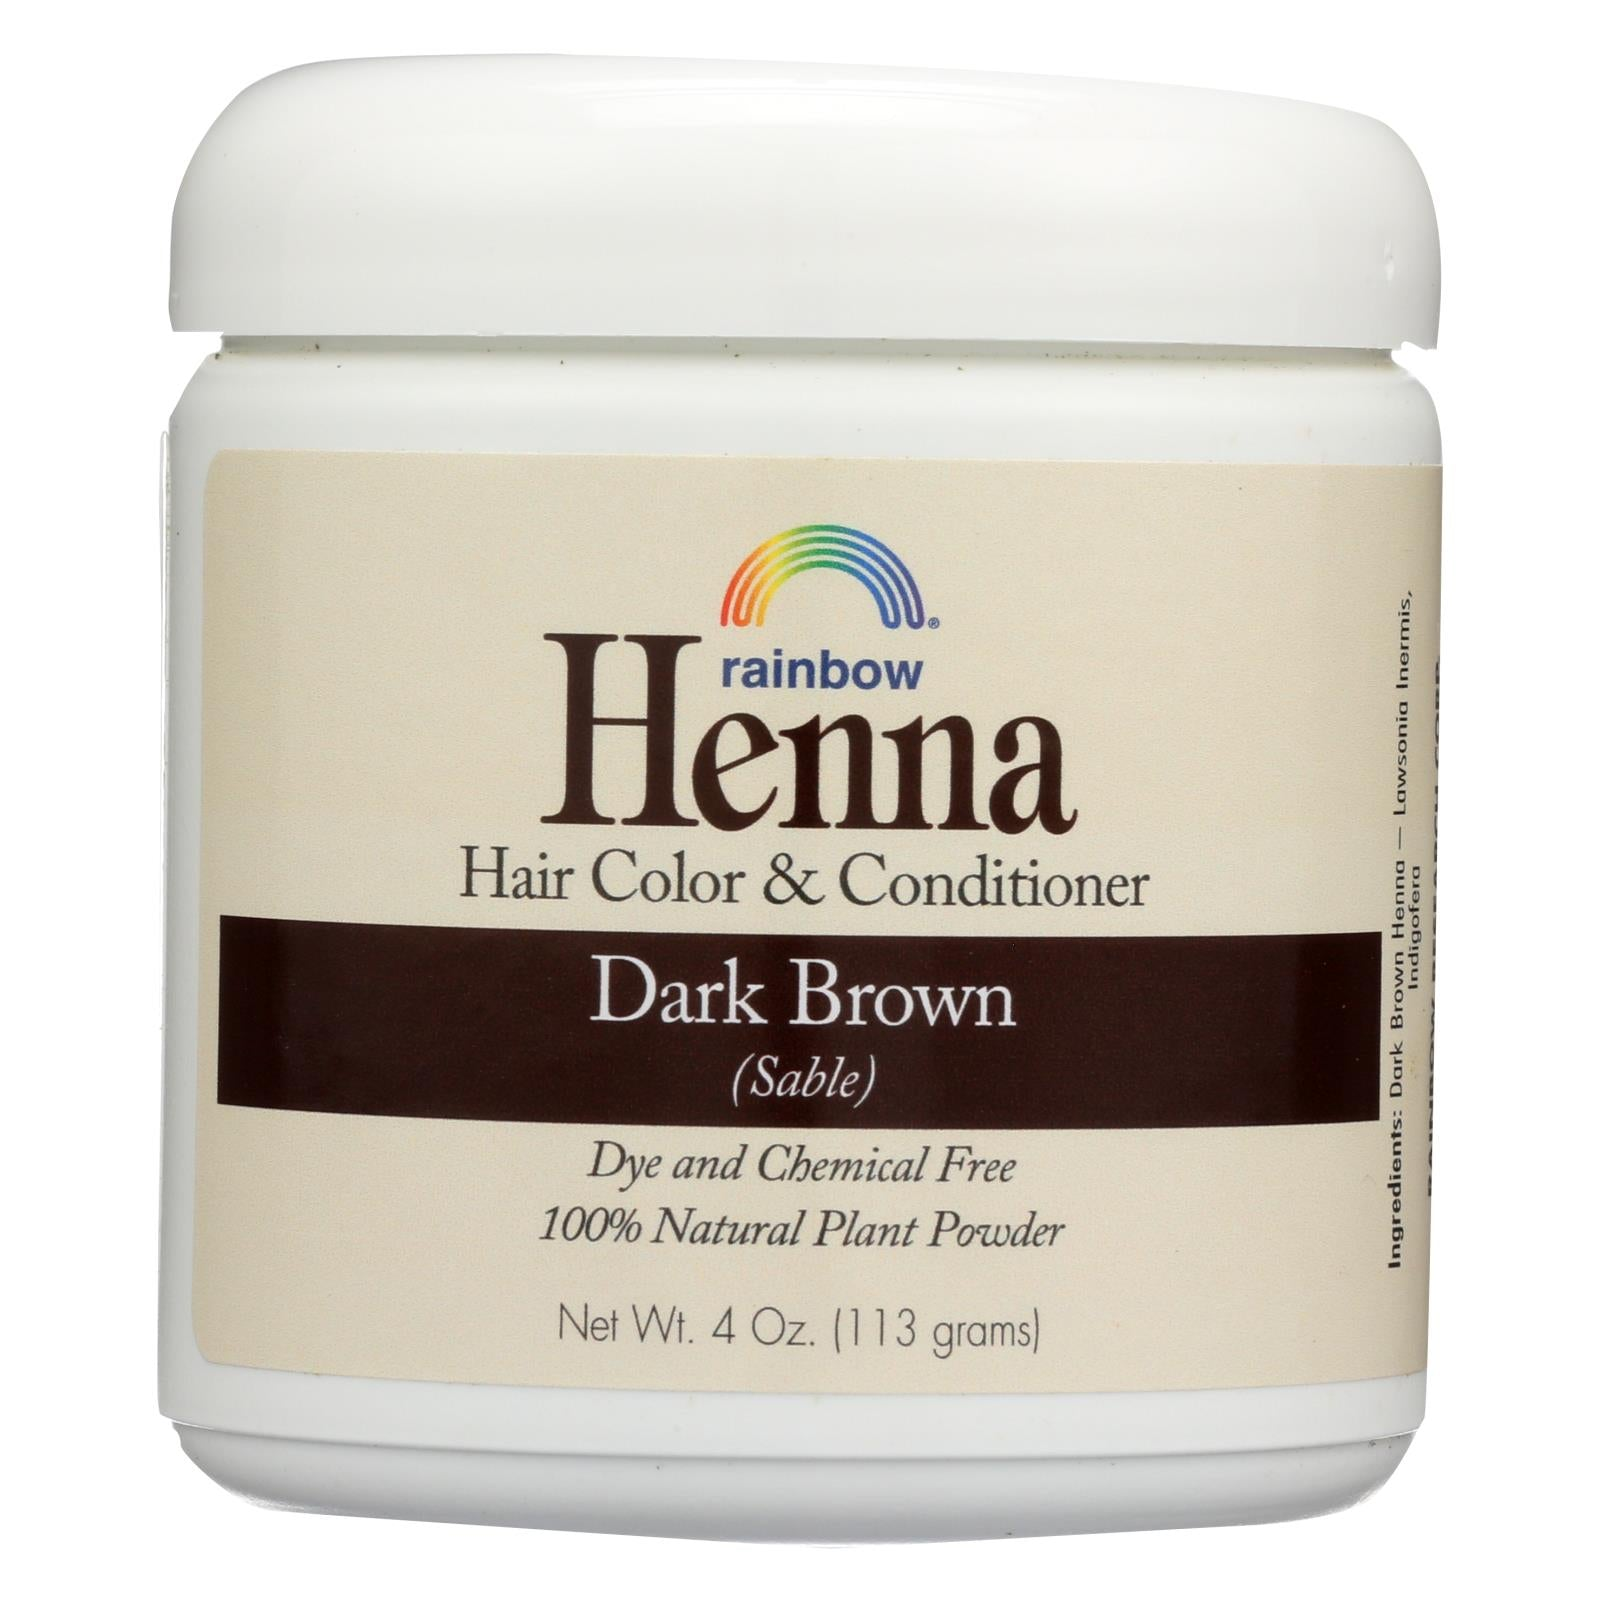 Buy Rainbow Research Henna Hair Color and Conditioner Persian Dark Brown Sable - 4 oz - Hair Color from Veroeco.com